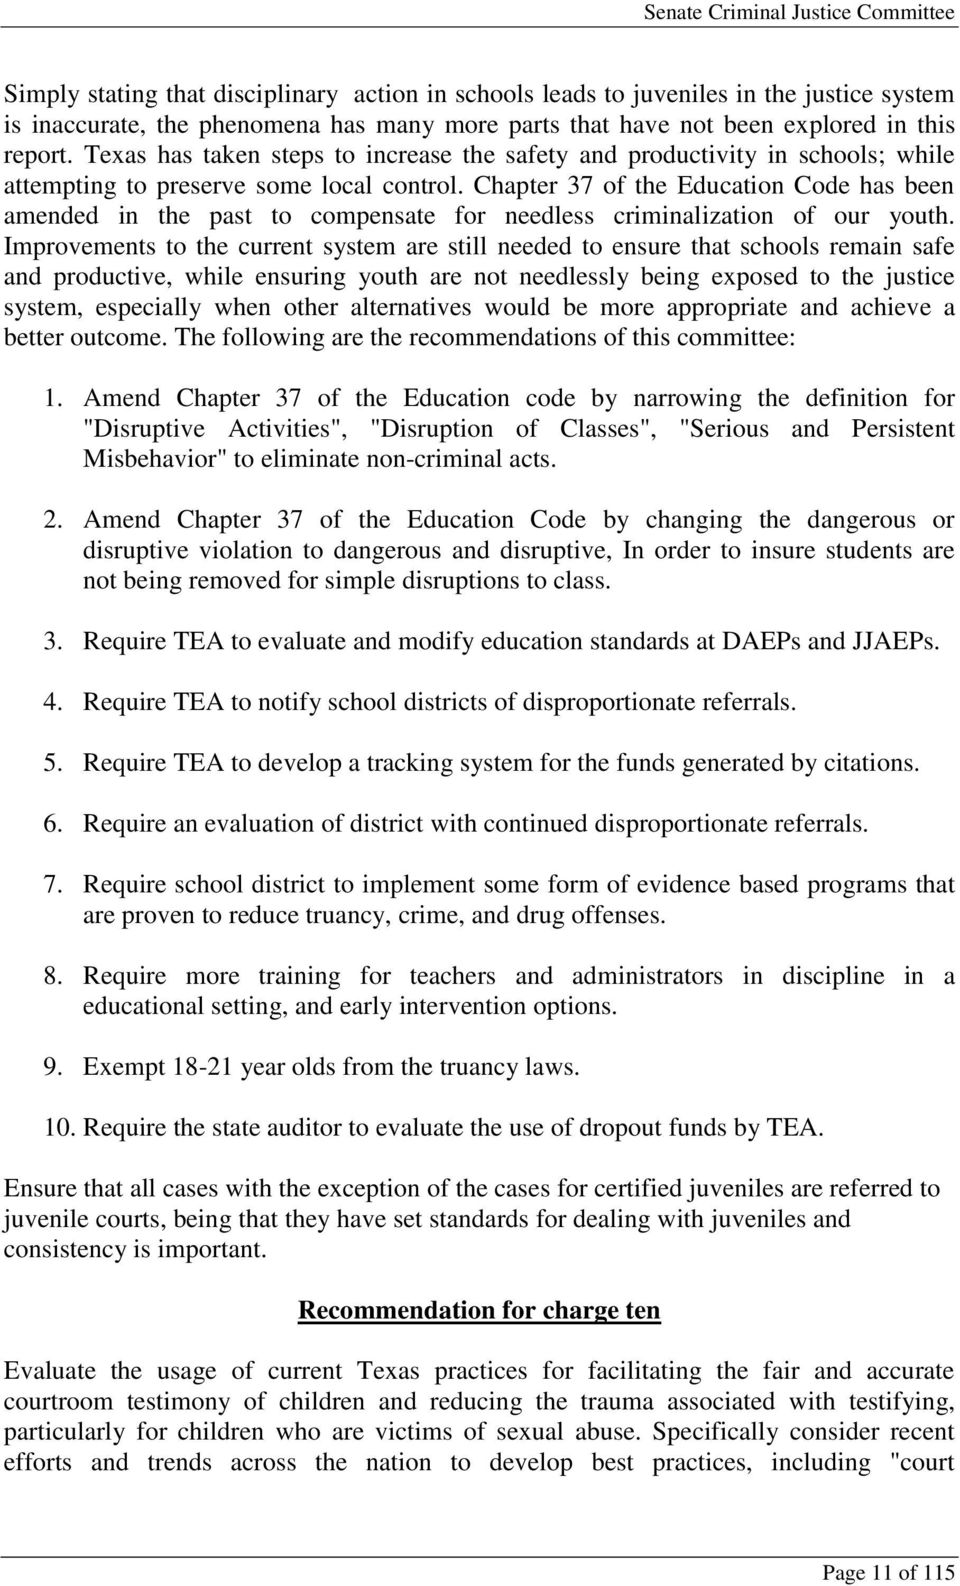 Chapter 37 of the Education Code has been amended in the past to compensate for needless criminalization of our youth.